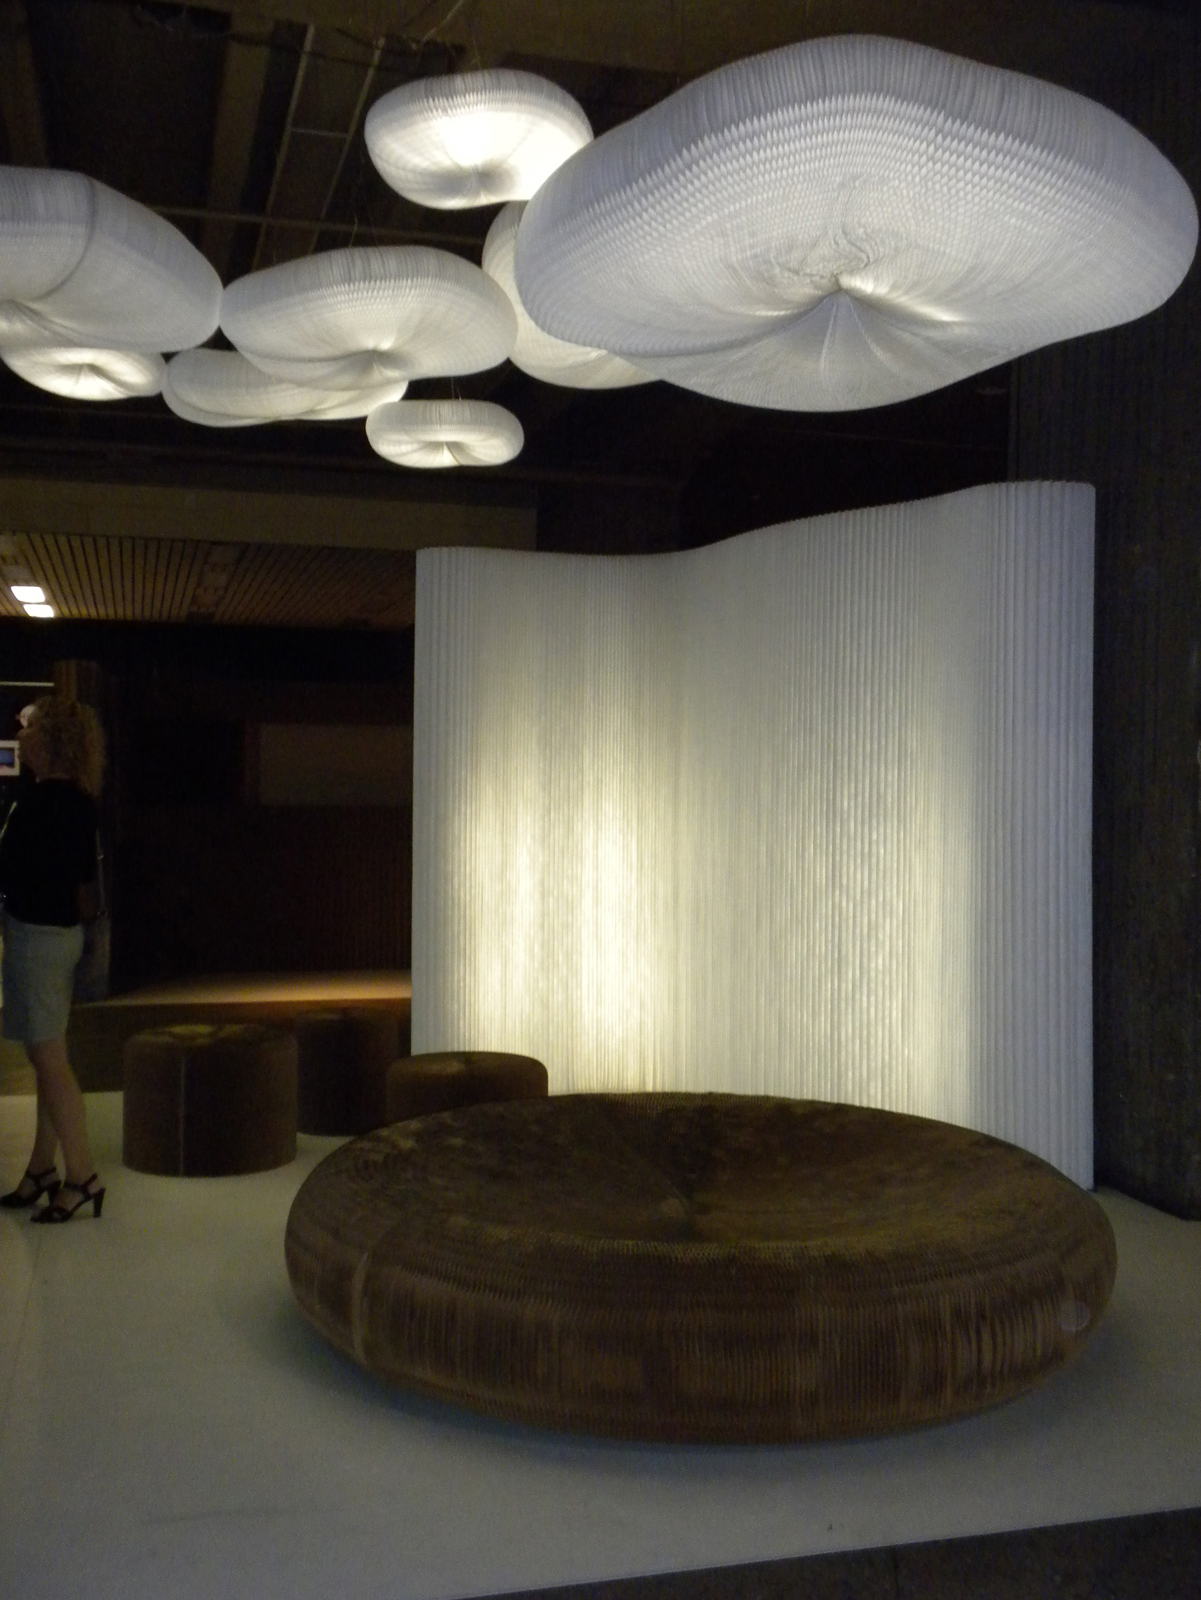 At the Montreal International Interior Design Show, the Molo booth provided a heavenly respite for weary attendees.